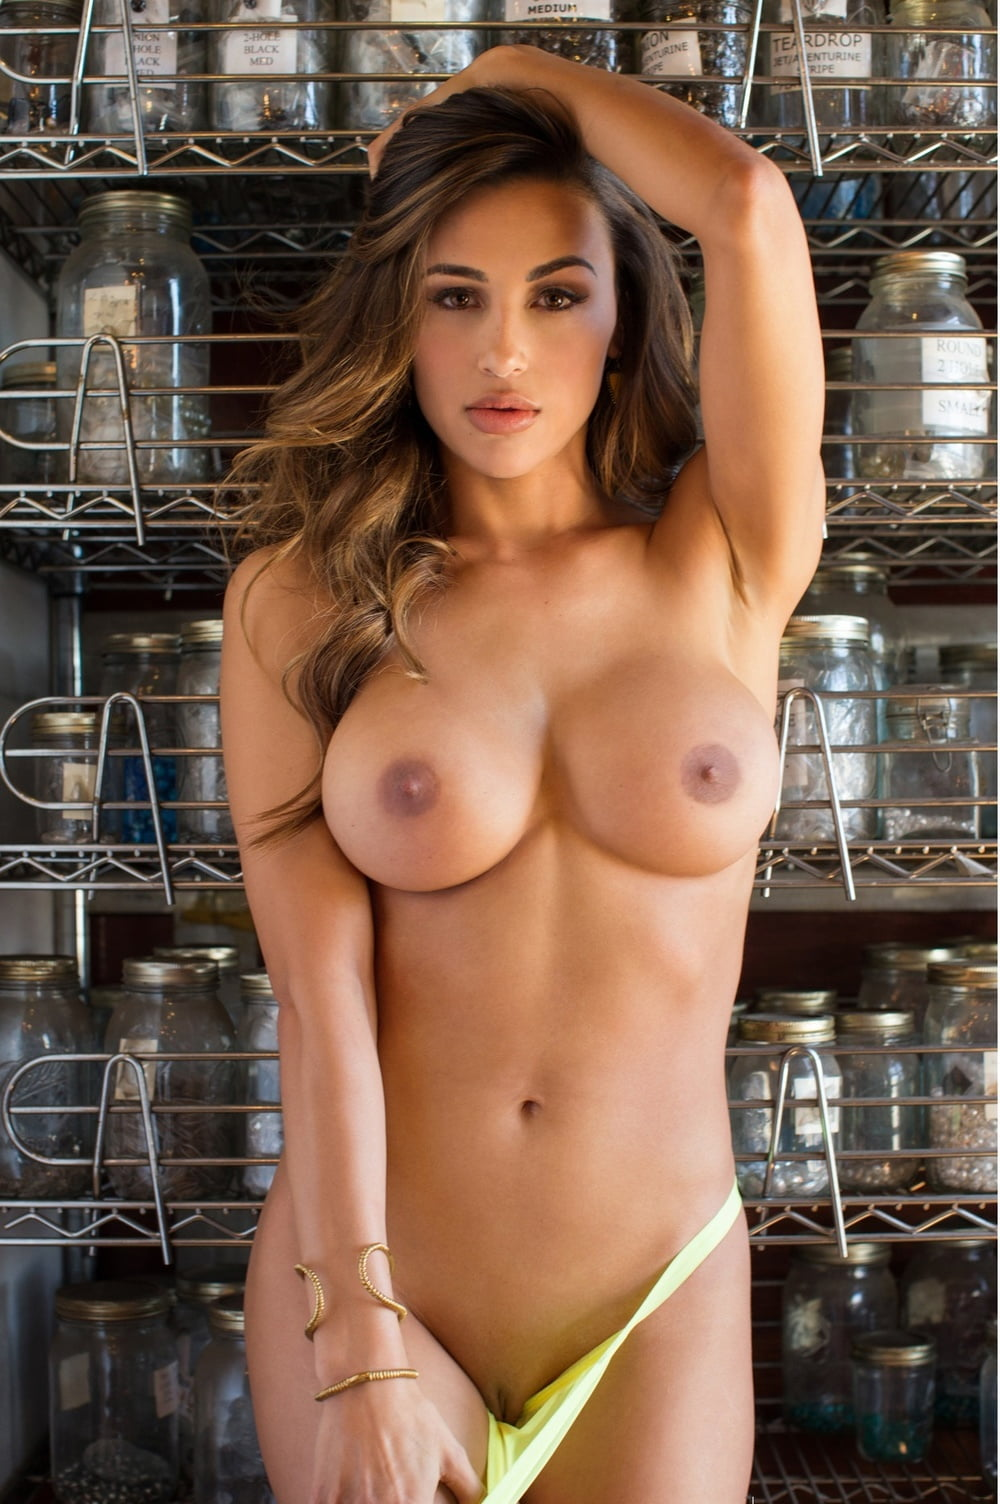 anna-beson-nude-pic